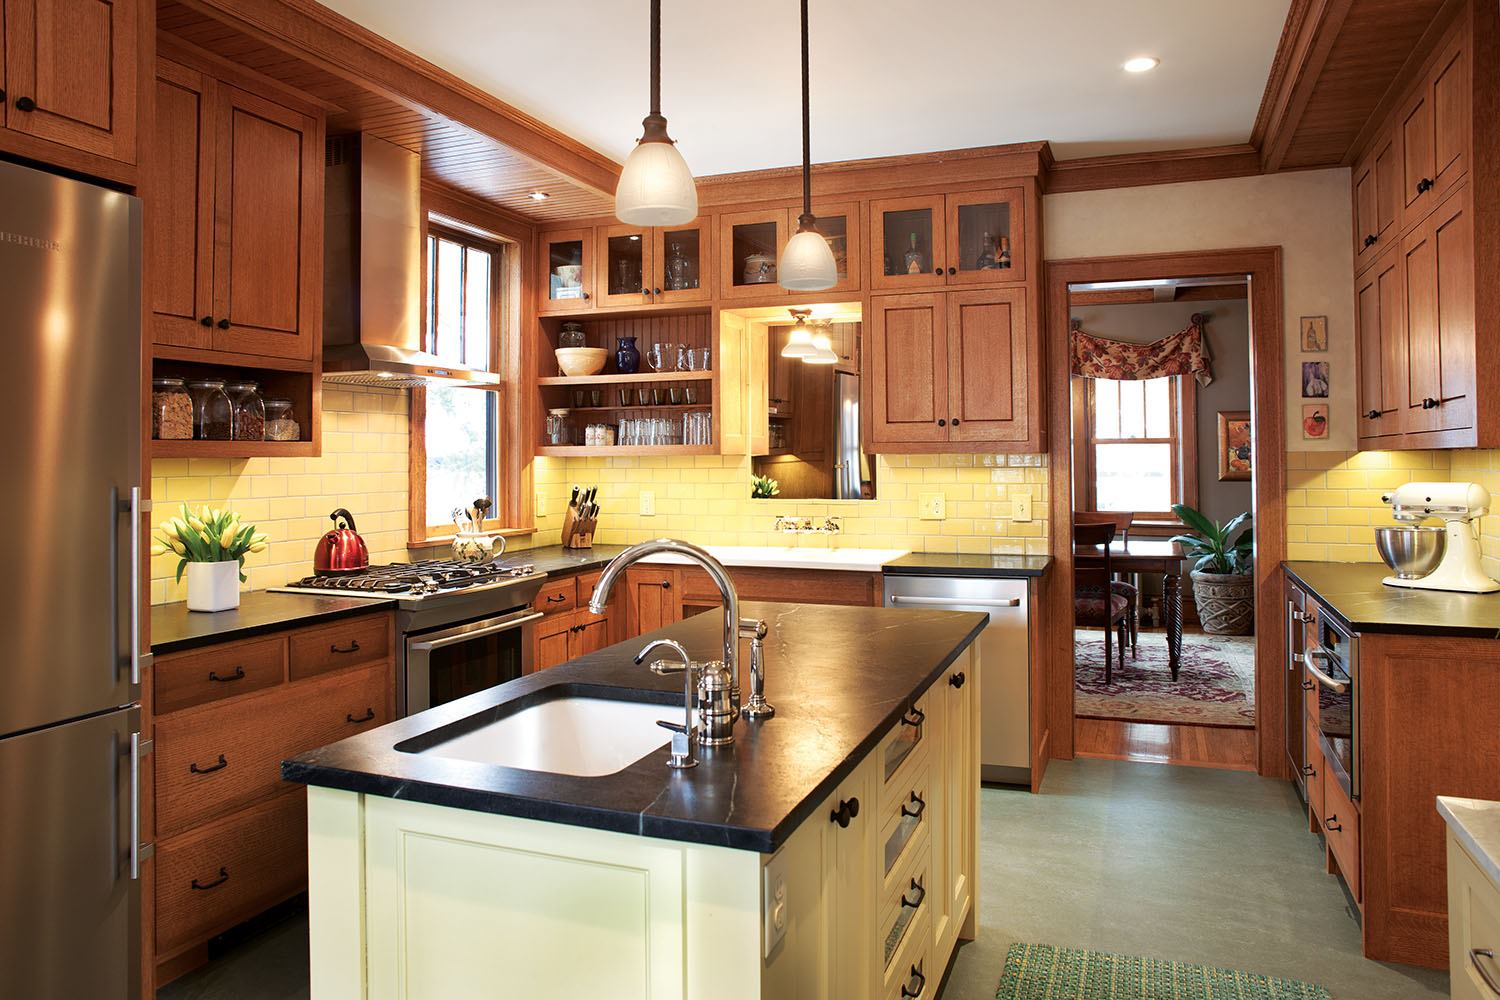 A Minneapolis Kitchen Remodel Captures The True Craftsman